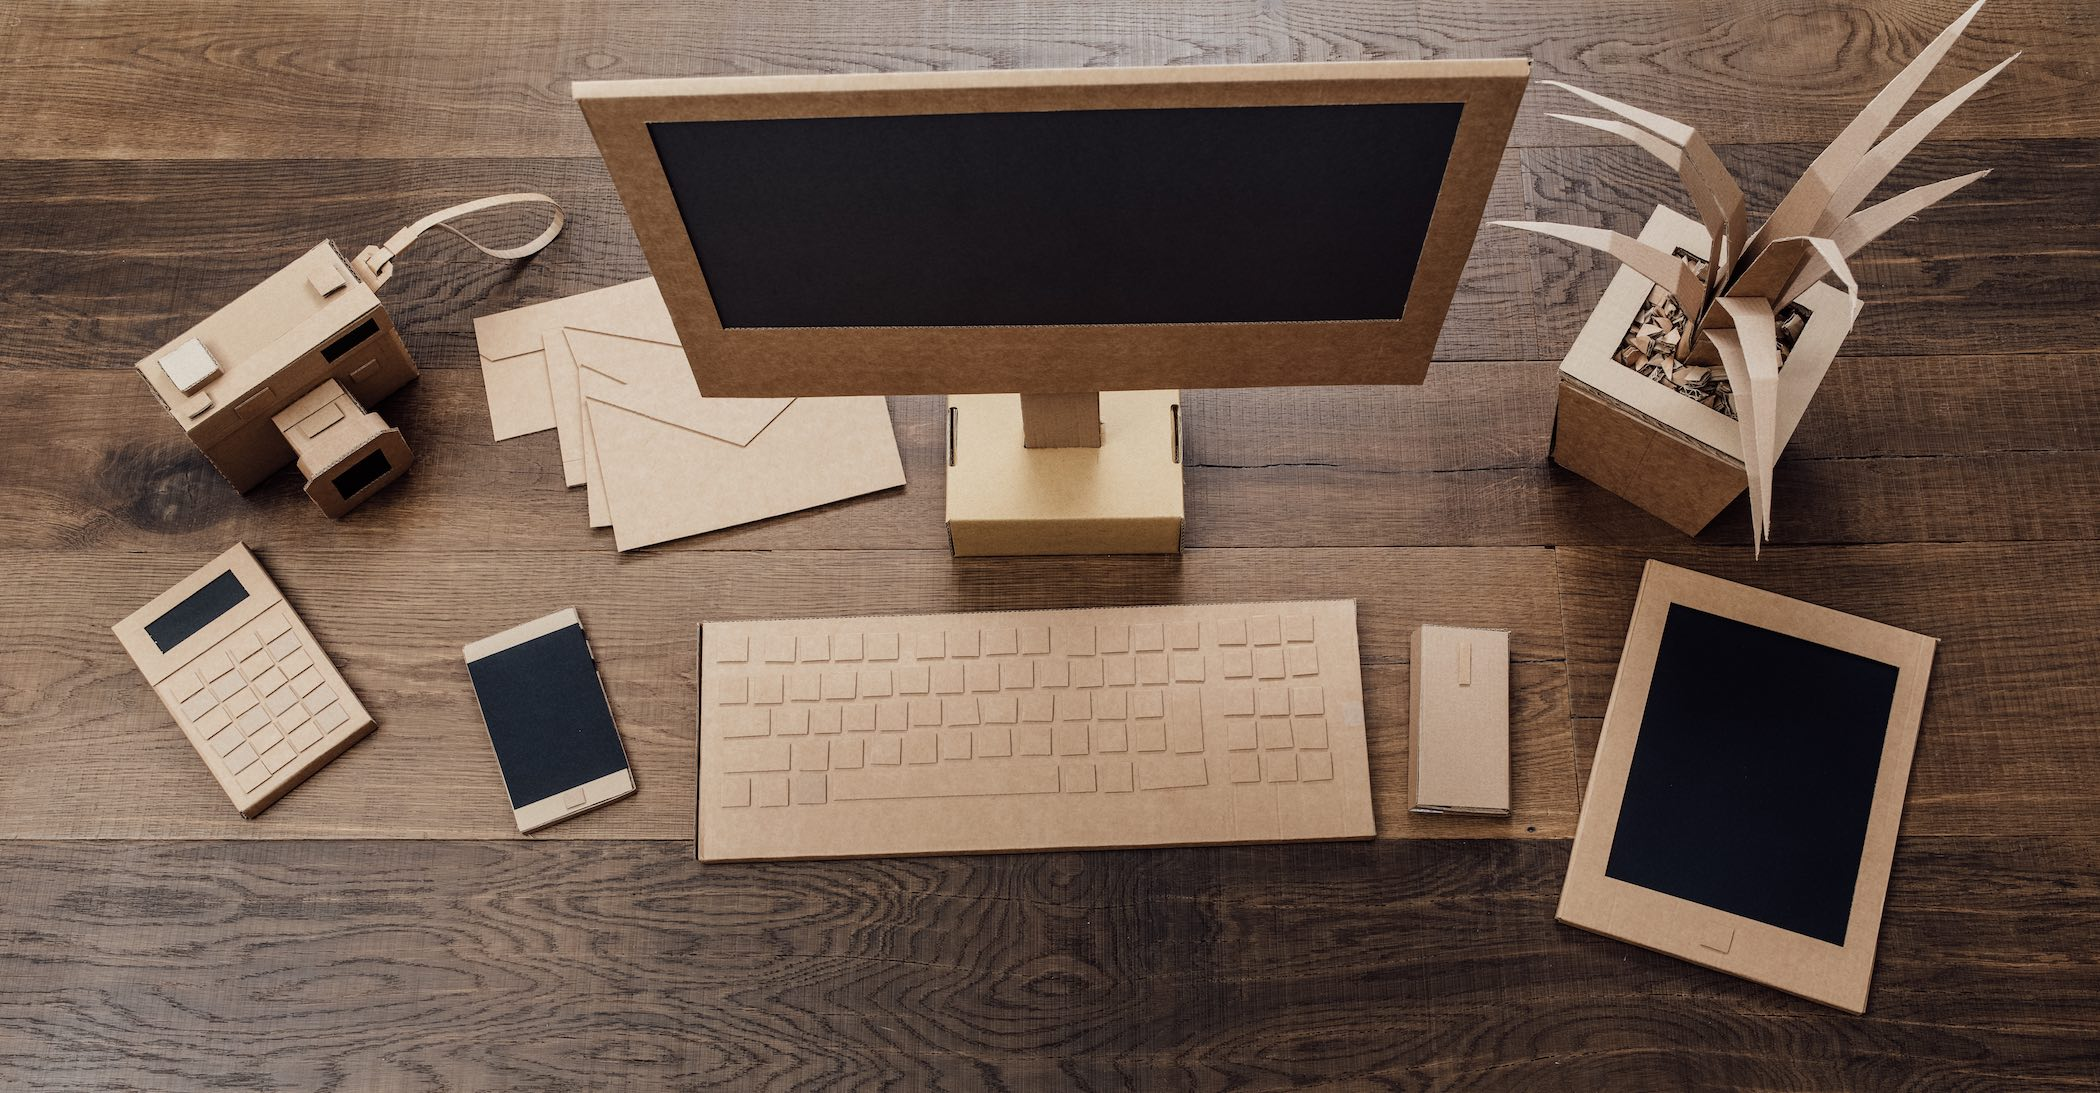 Creative eco friendly cardboard office